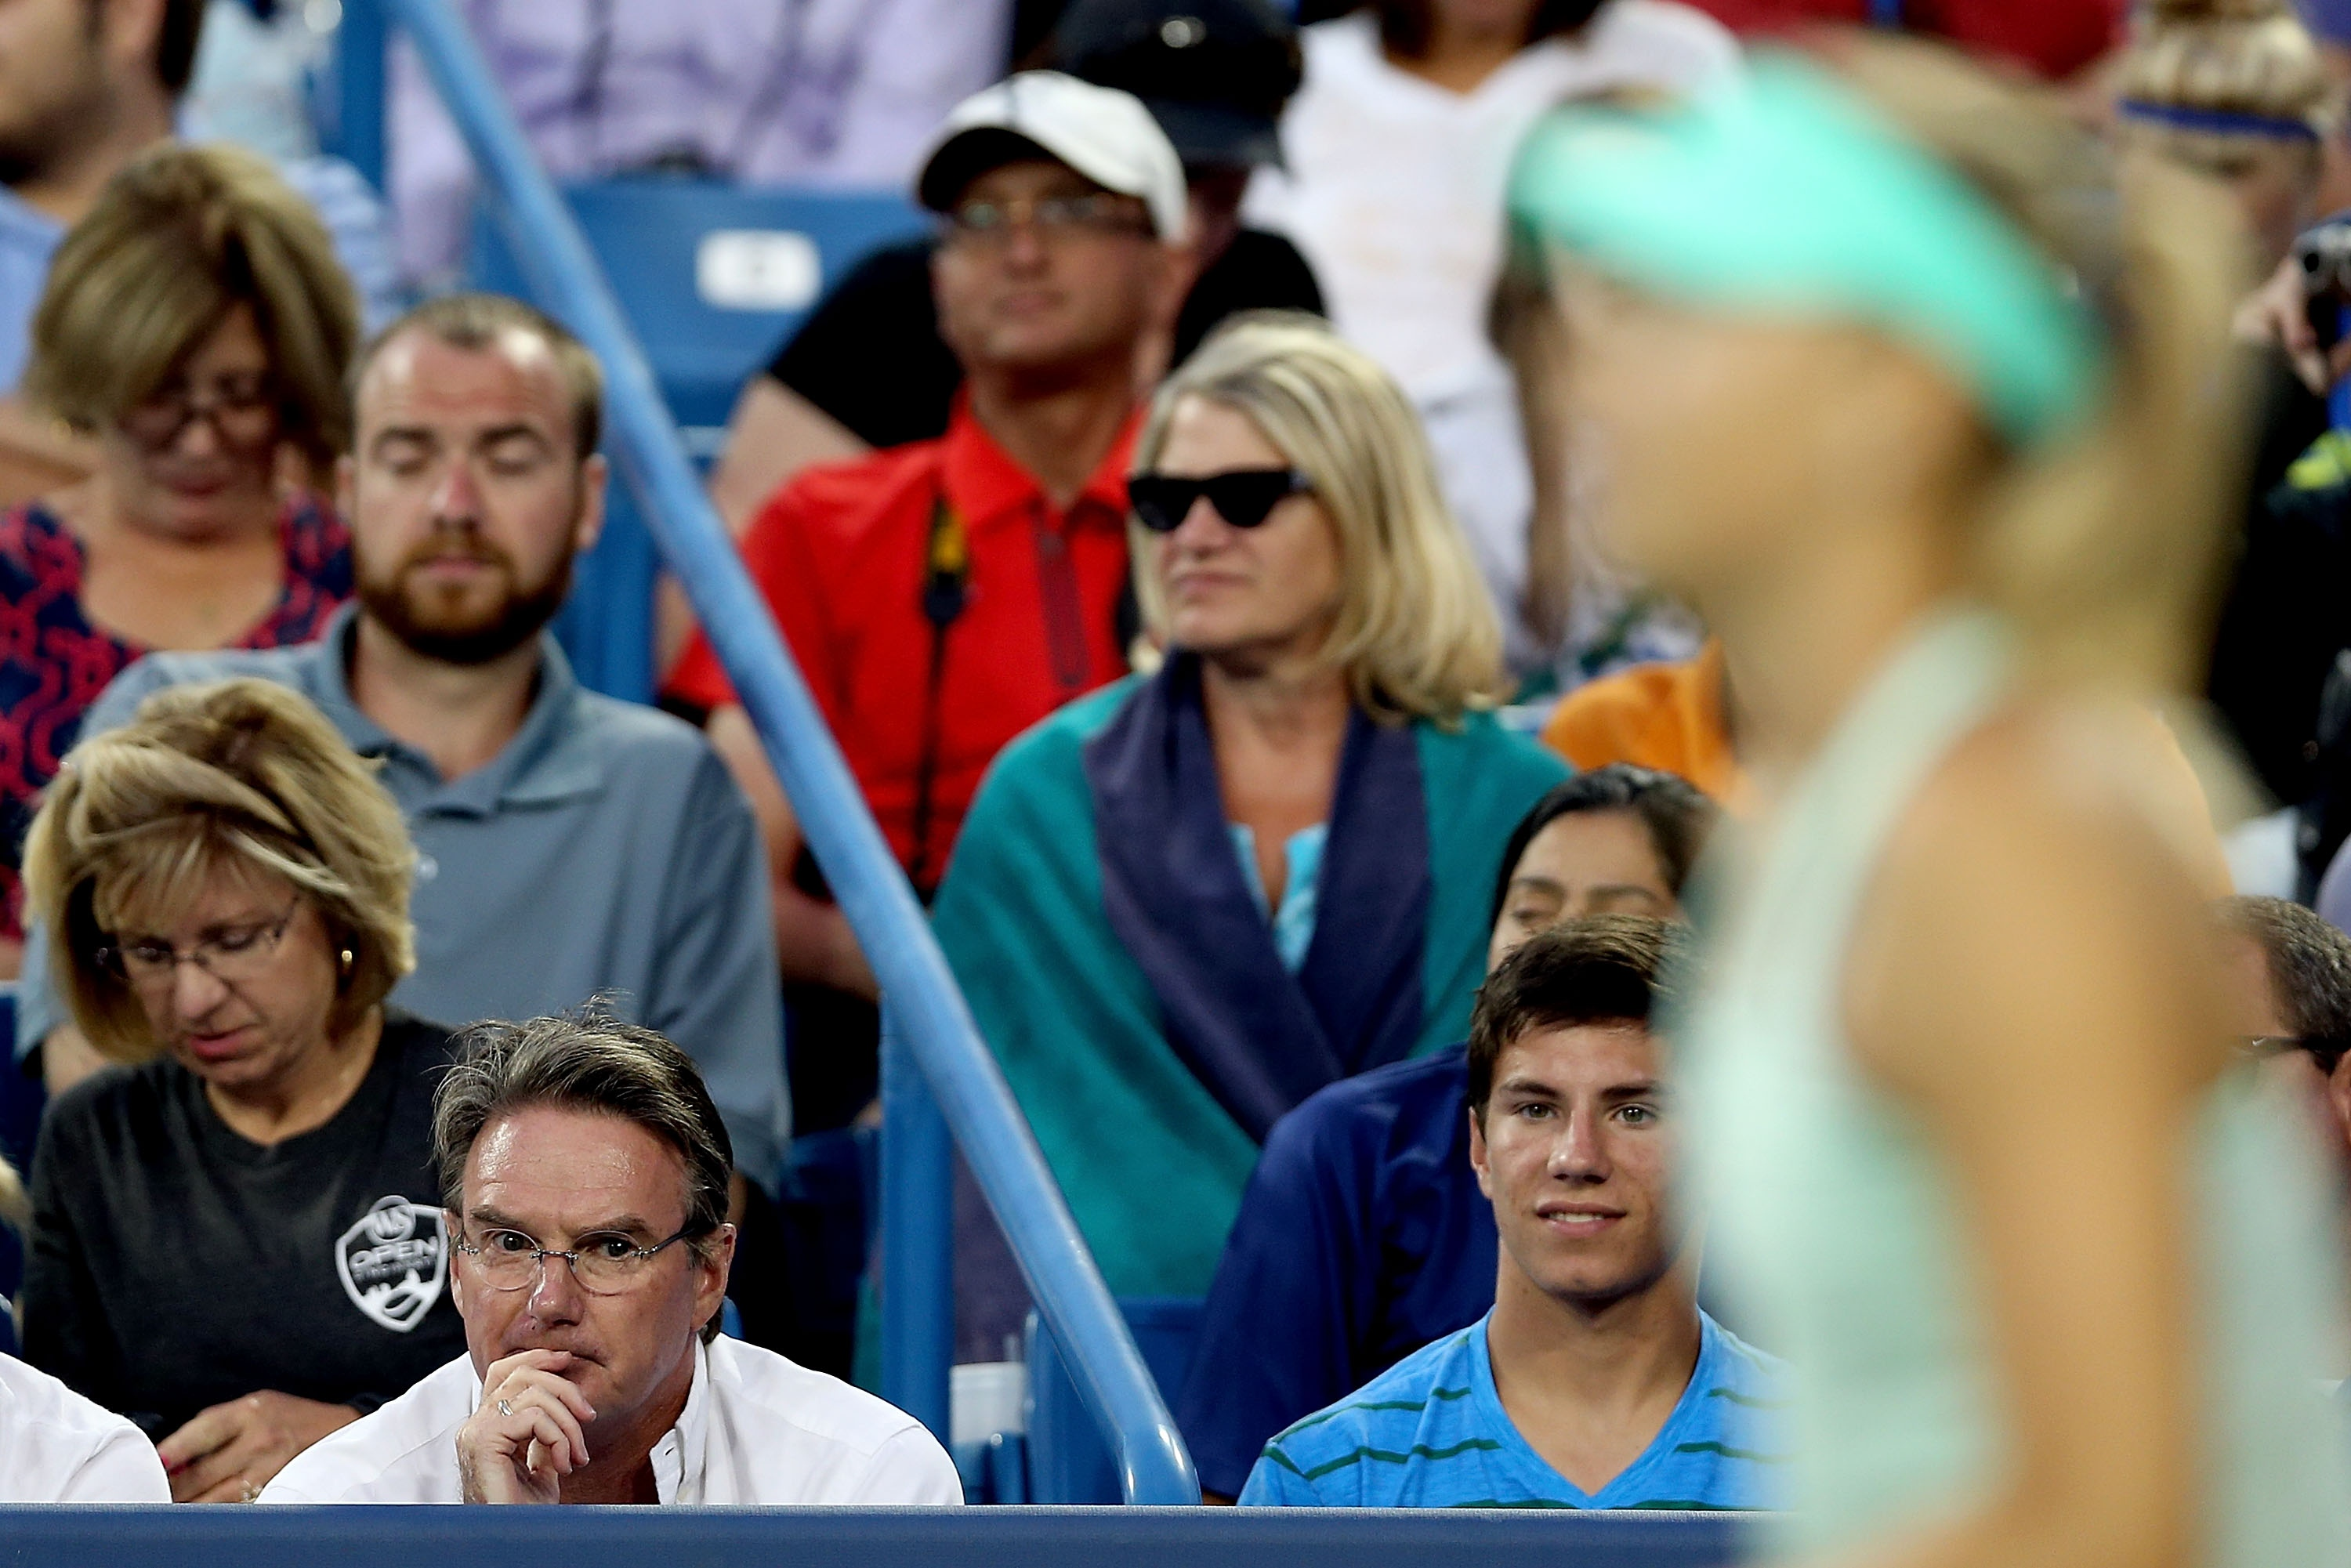 Jimmy Connors watches Maria Sharapova as she plays Sloane Stephens. (Getty Images)